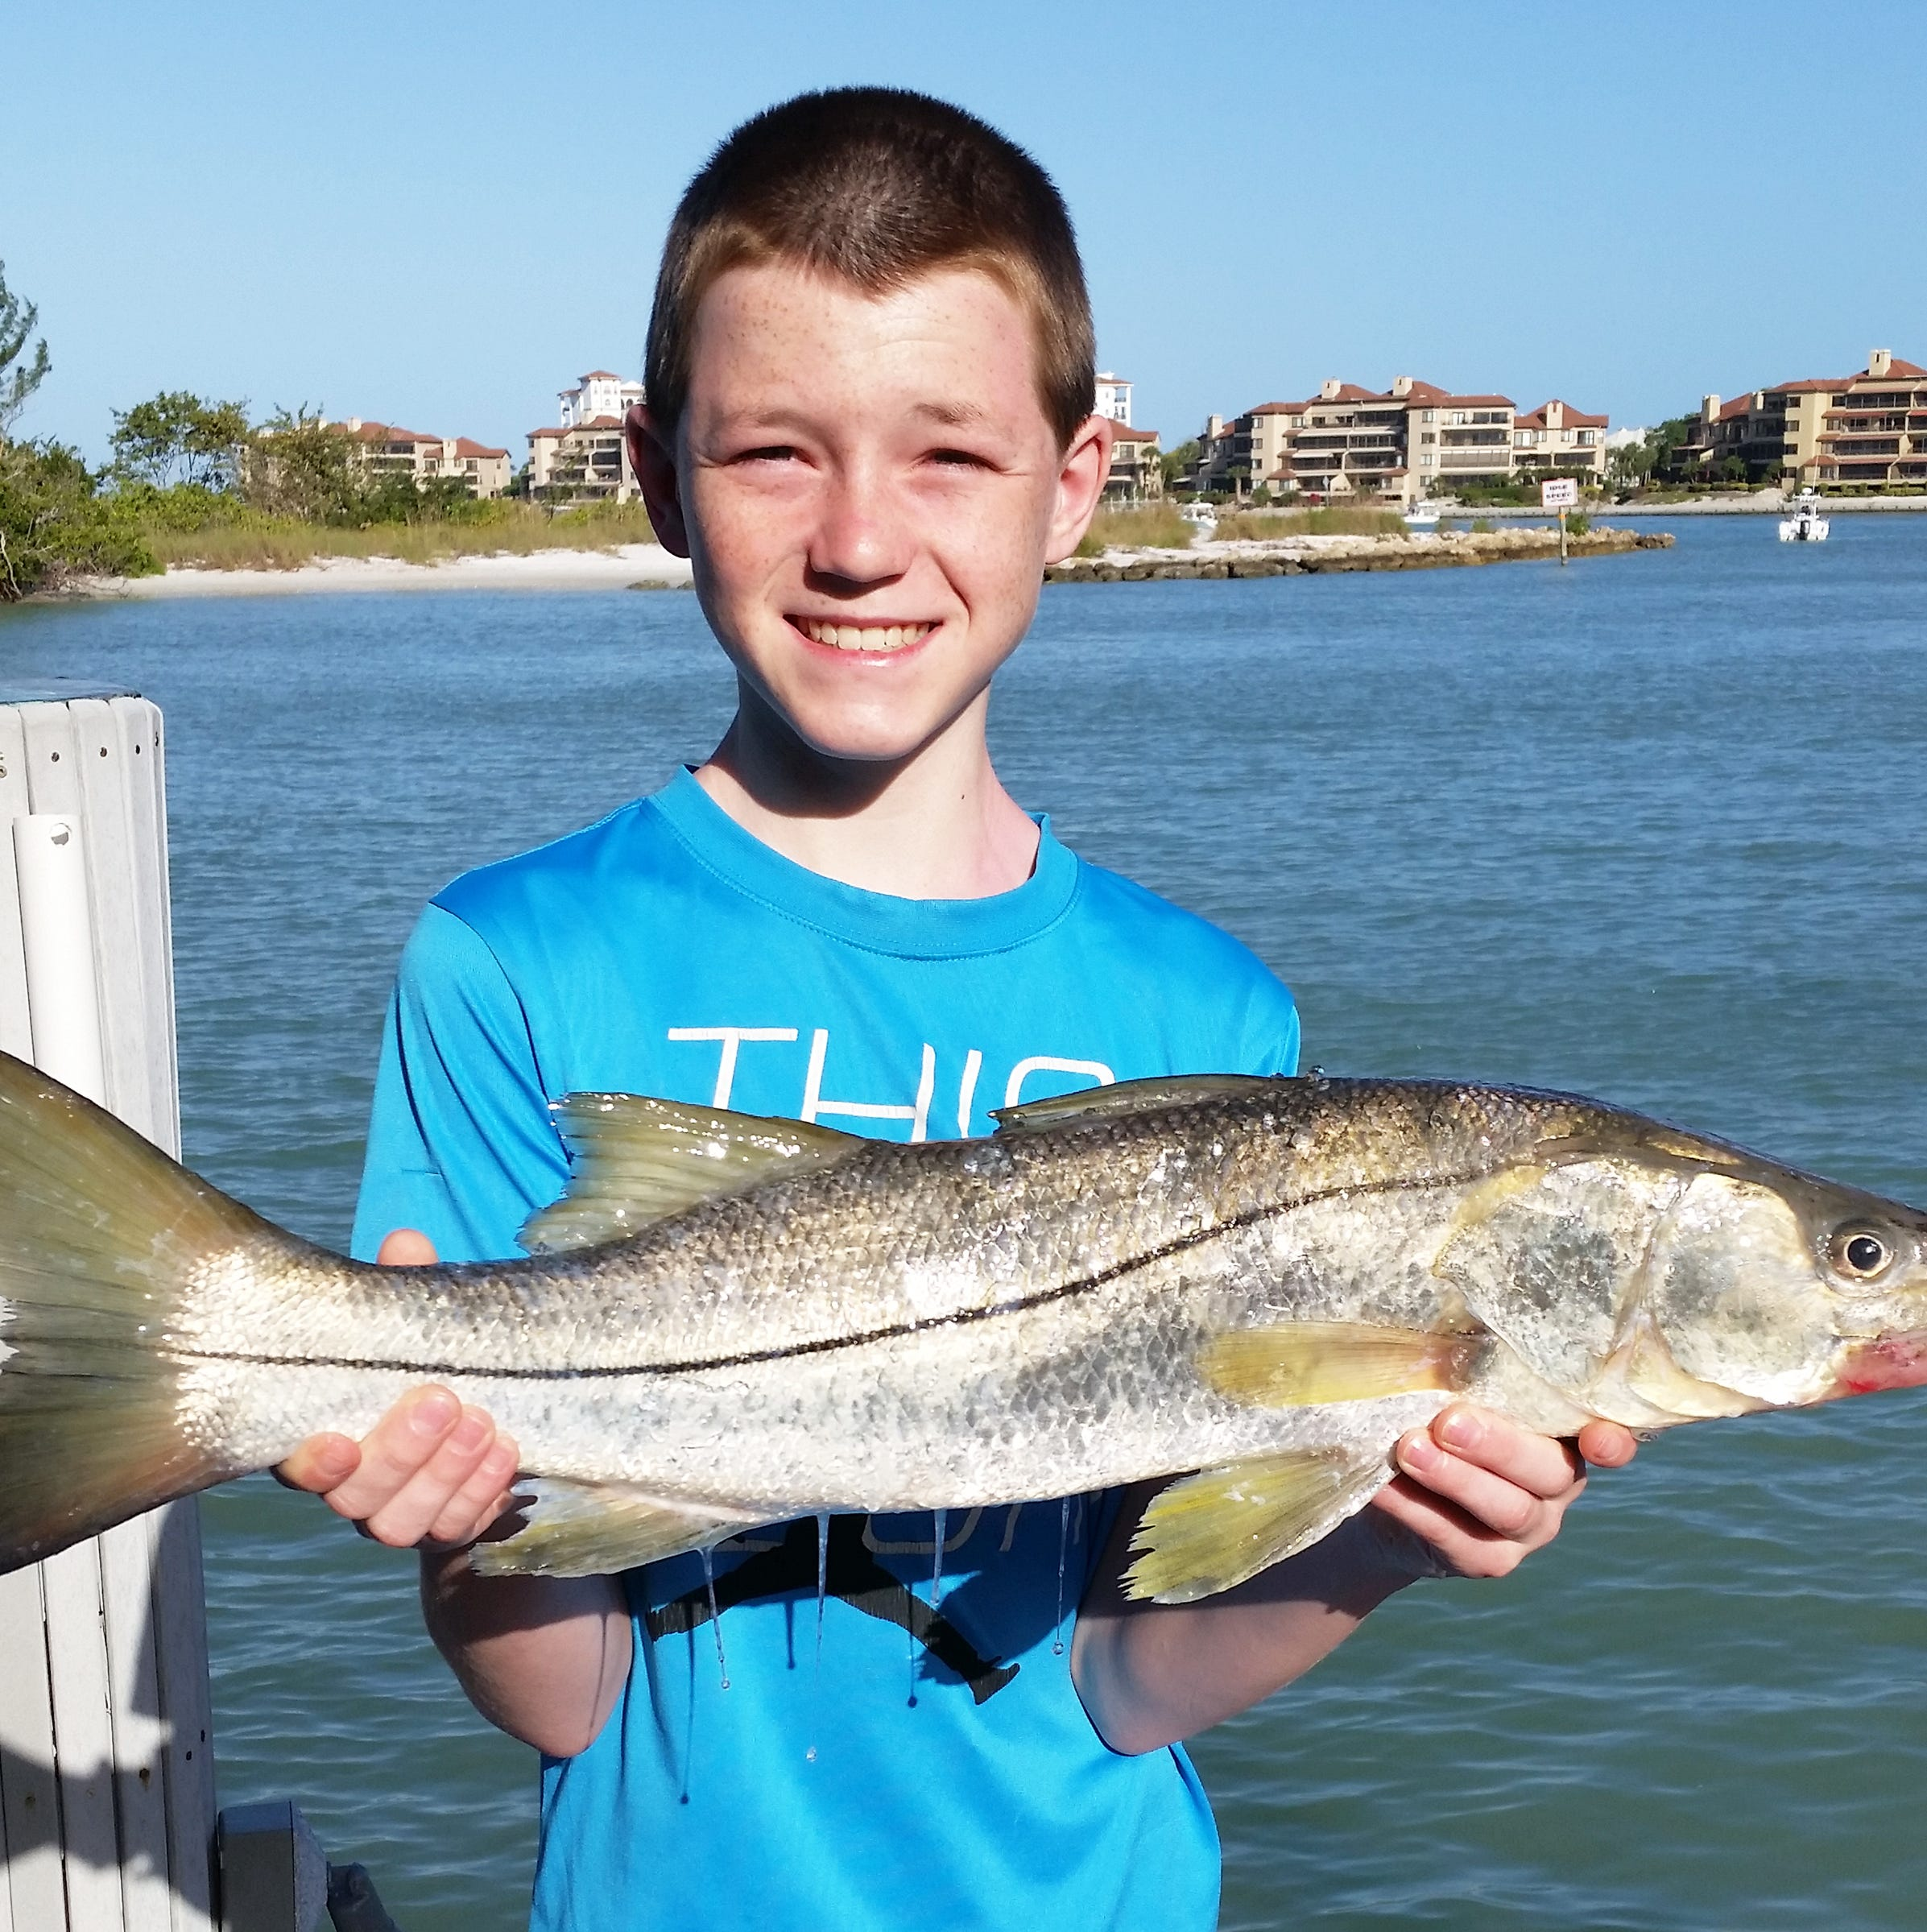 Fishingcast: Conditions for Southwest Florida, April 5-12